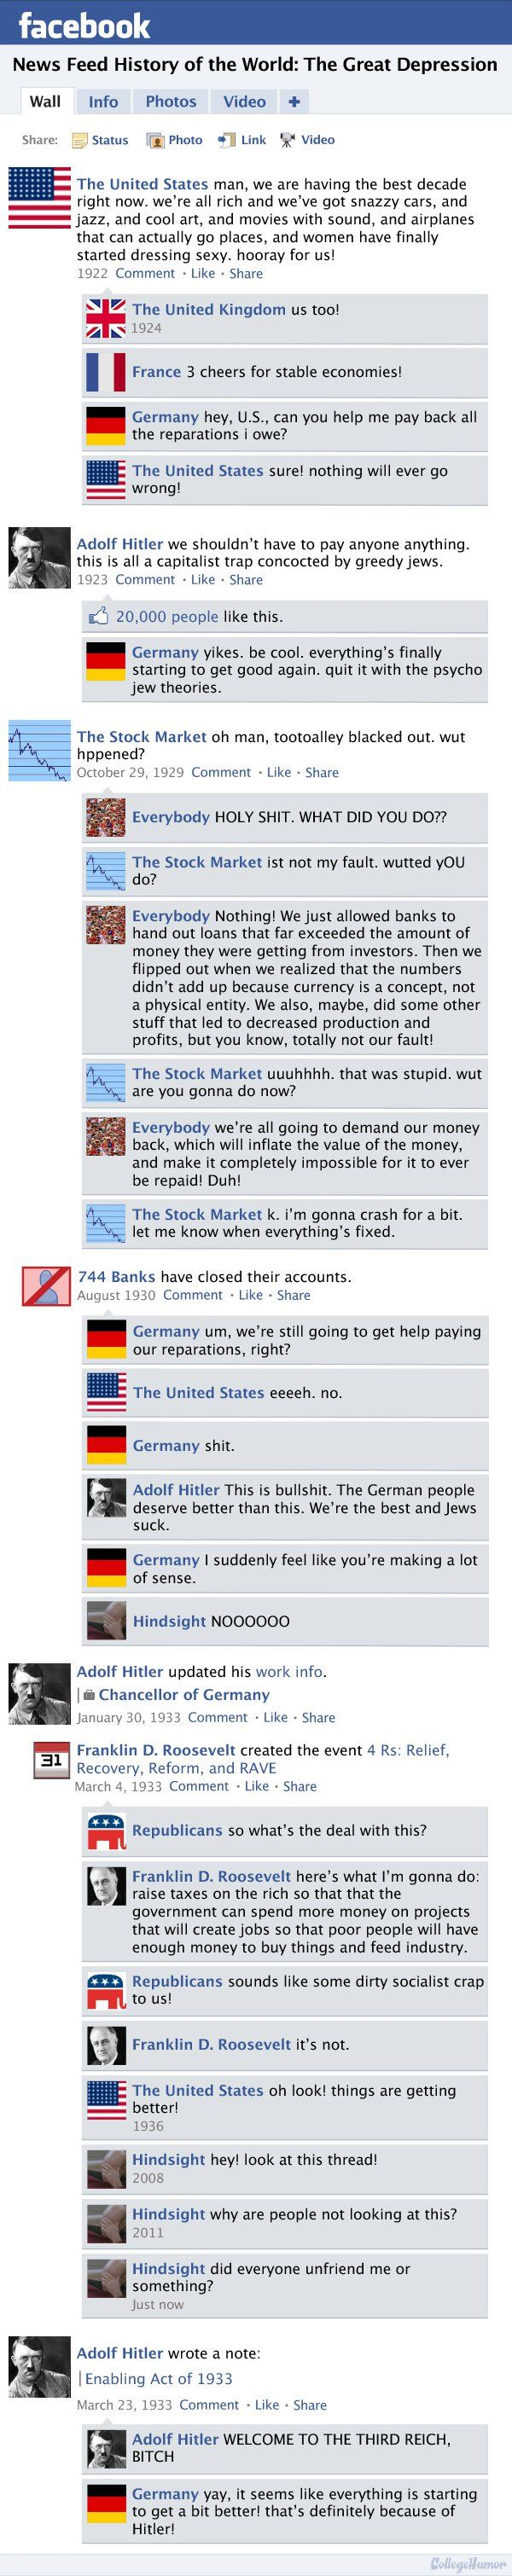 """Facebook News Feed History of the World: World War I to World War II"" by Susanna Wolff - CollegeHumor Article - Part 2"